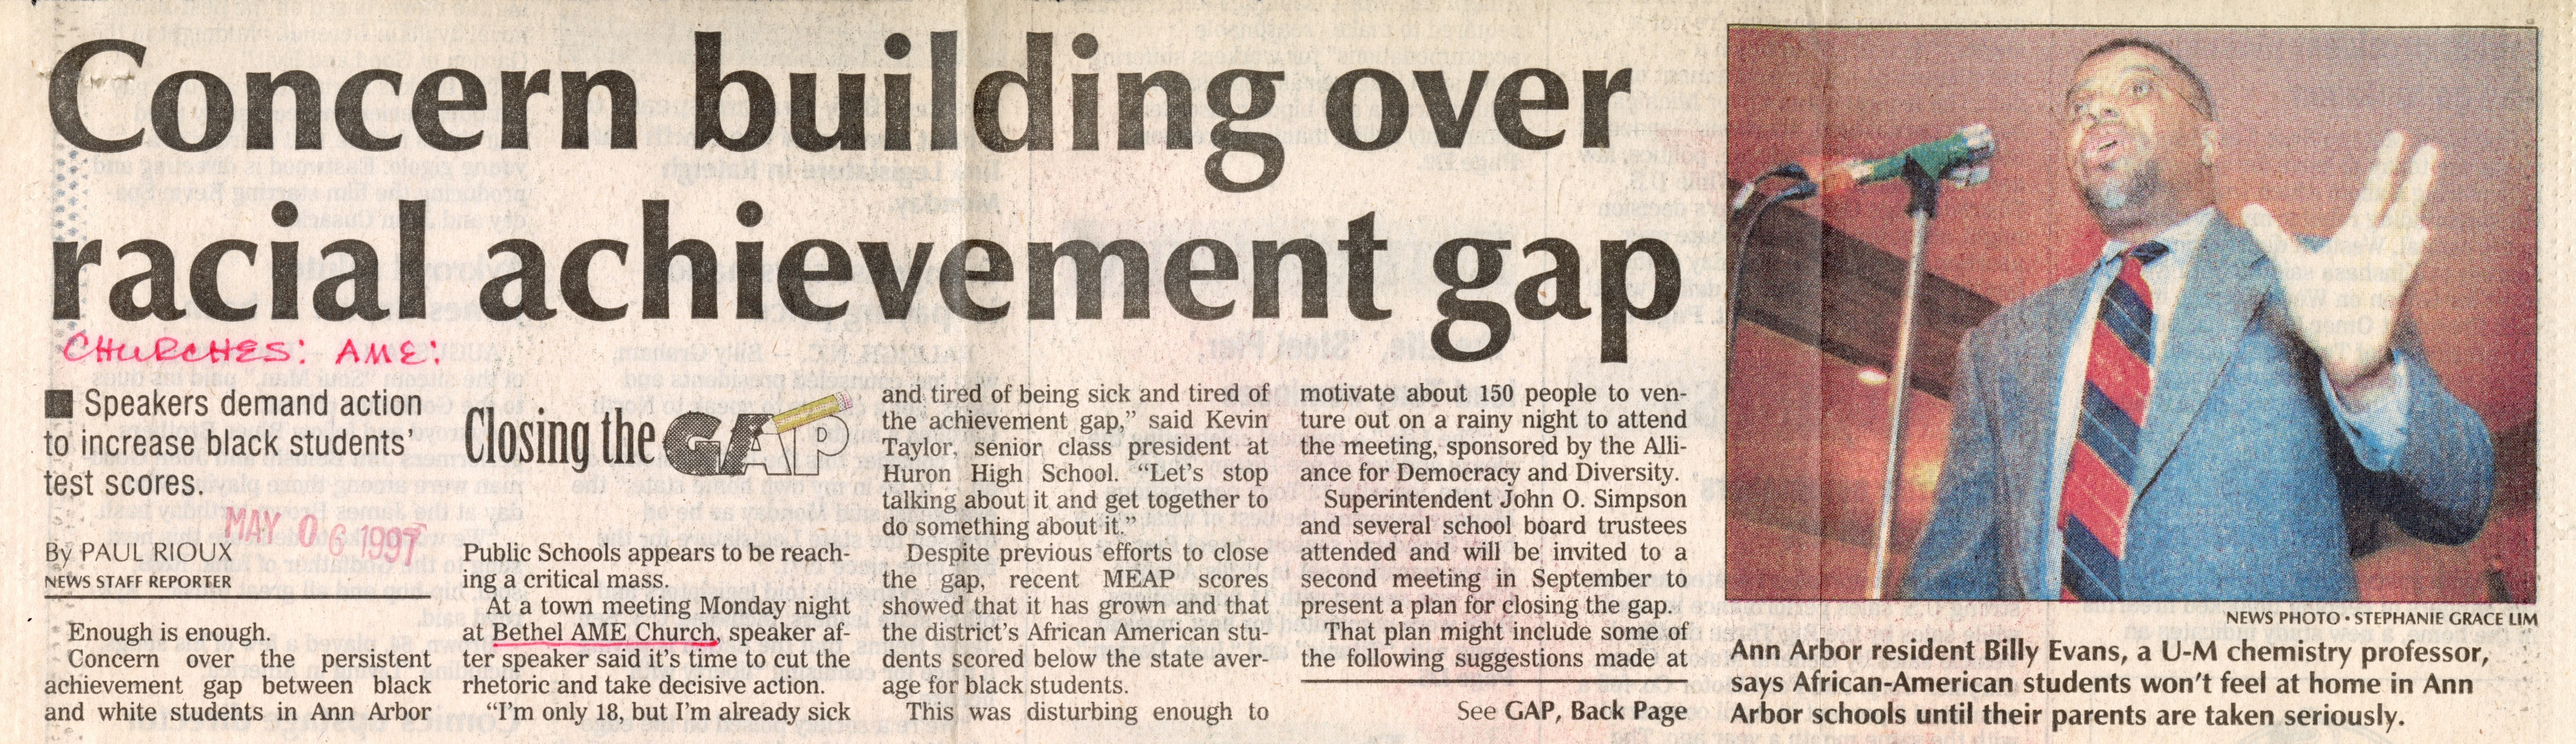 Concern building over racial achievement gap image